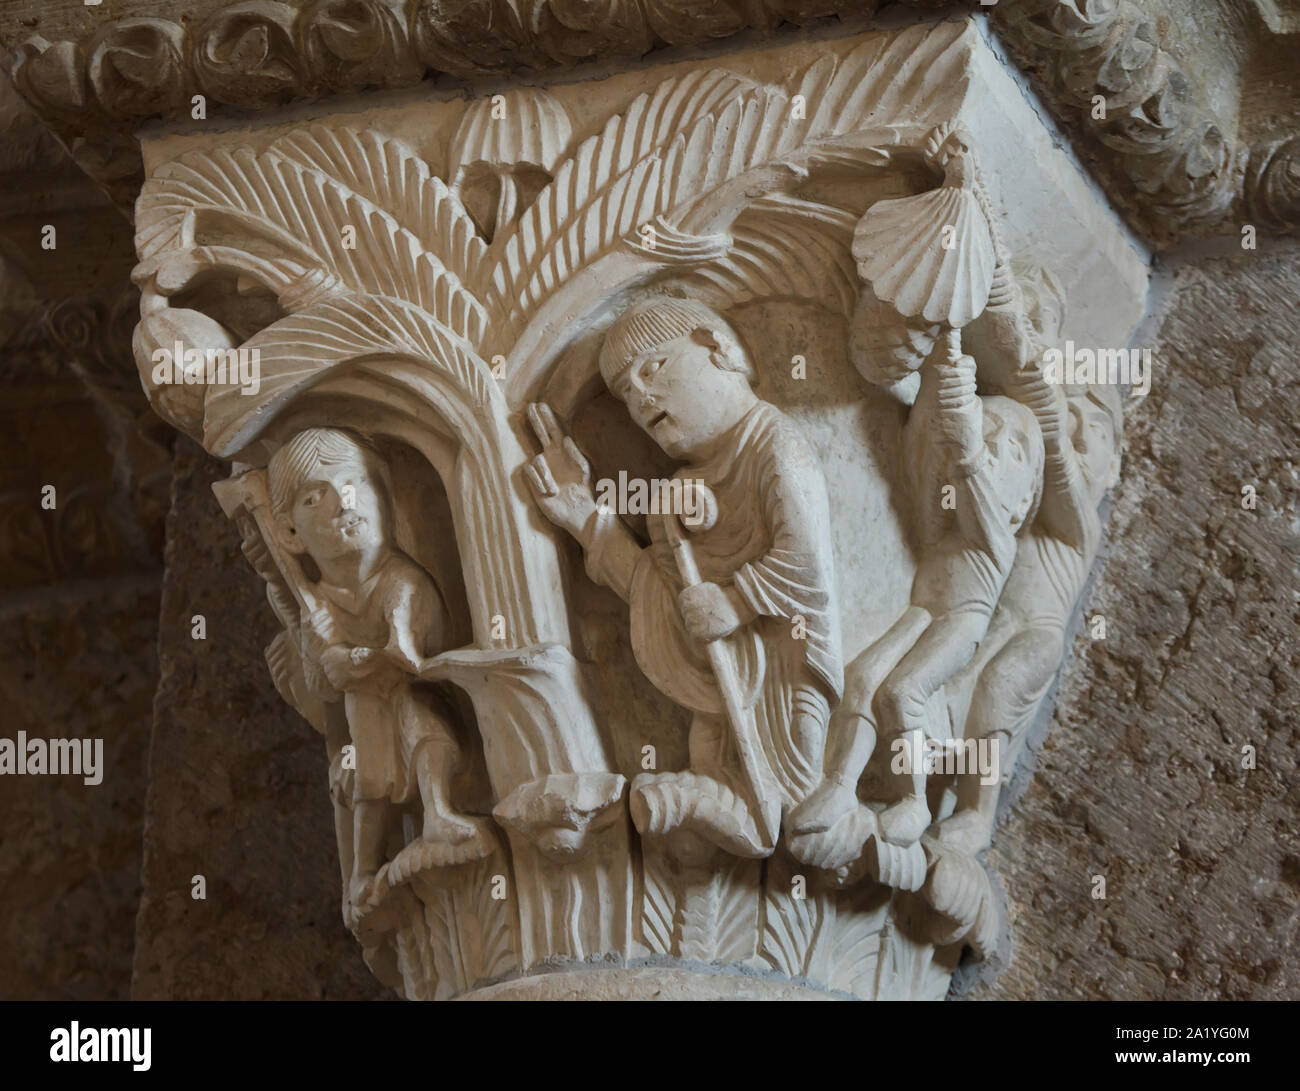 Saint Martin and the Tree depicted in the Romanesque capital dated from the 12th century in the Basilica of Saint Mary Magdalene (Basilique Sainte-Marie-Madeleine de Vézelay) of the Vézelay Abbey (Abbaye Sainte-Marie-Madeleine de Vézelay) in Vézelay, Burgundy, France. Stock Photo